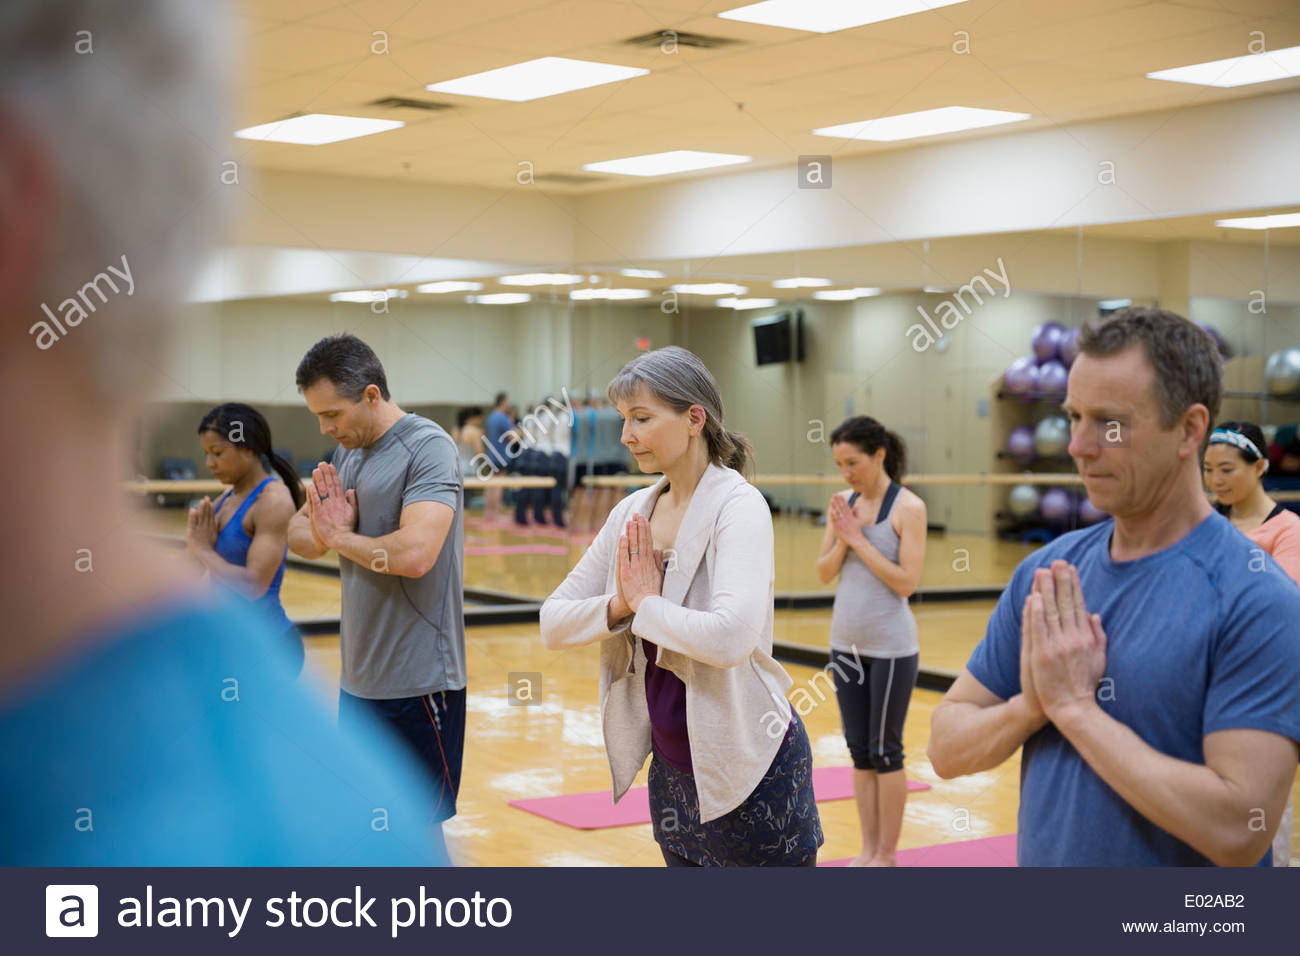 Group practicing prayer pose in yoga class - Stock Image